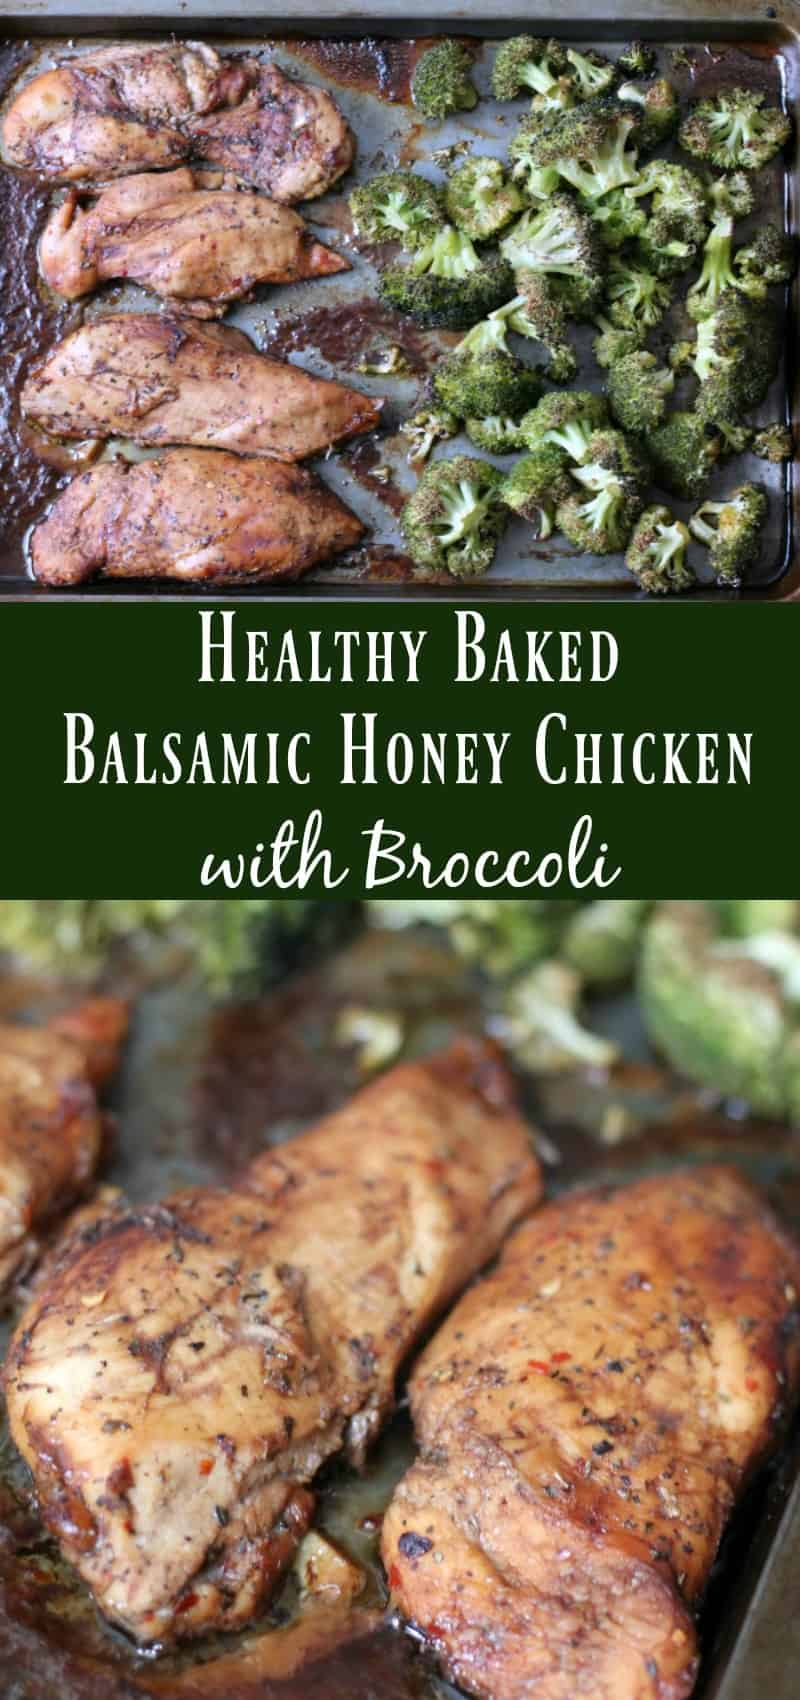 Healthy Baked Balsamic Honey Chicken with Broccoli